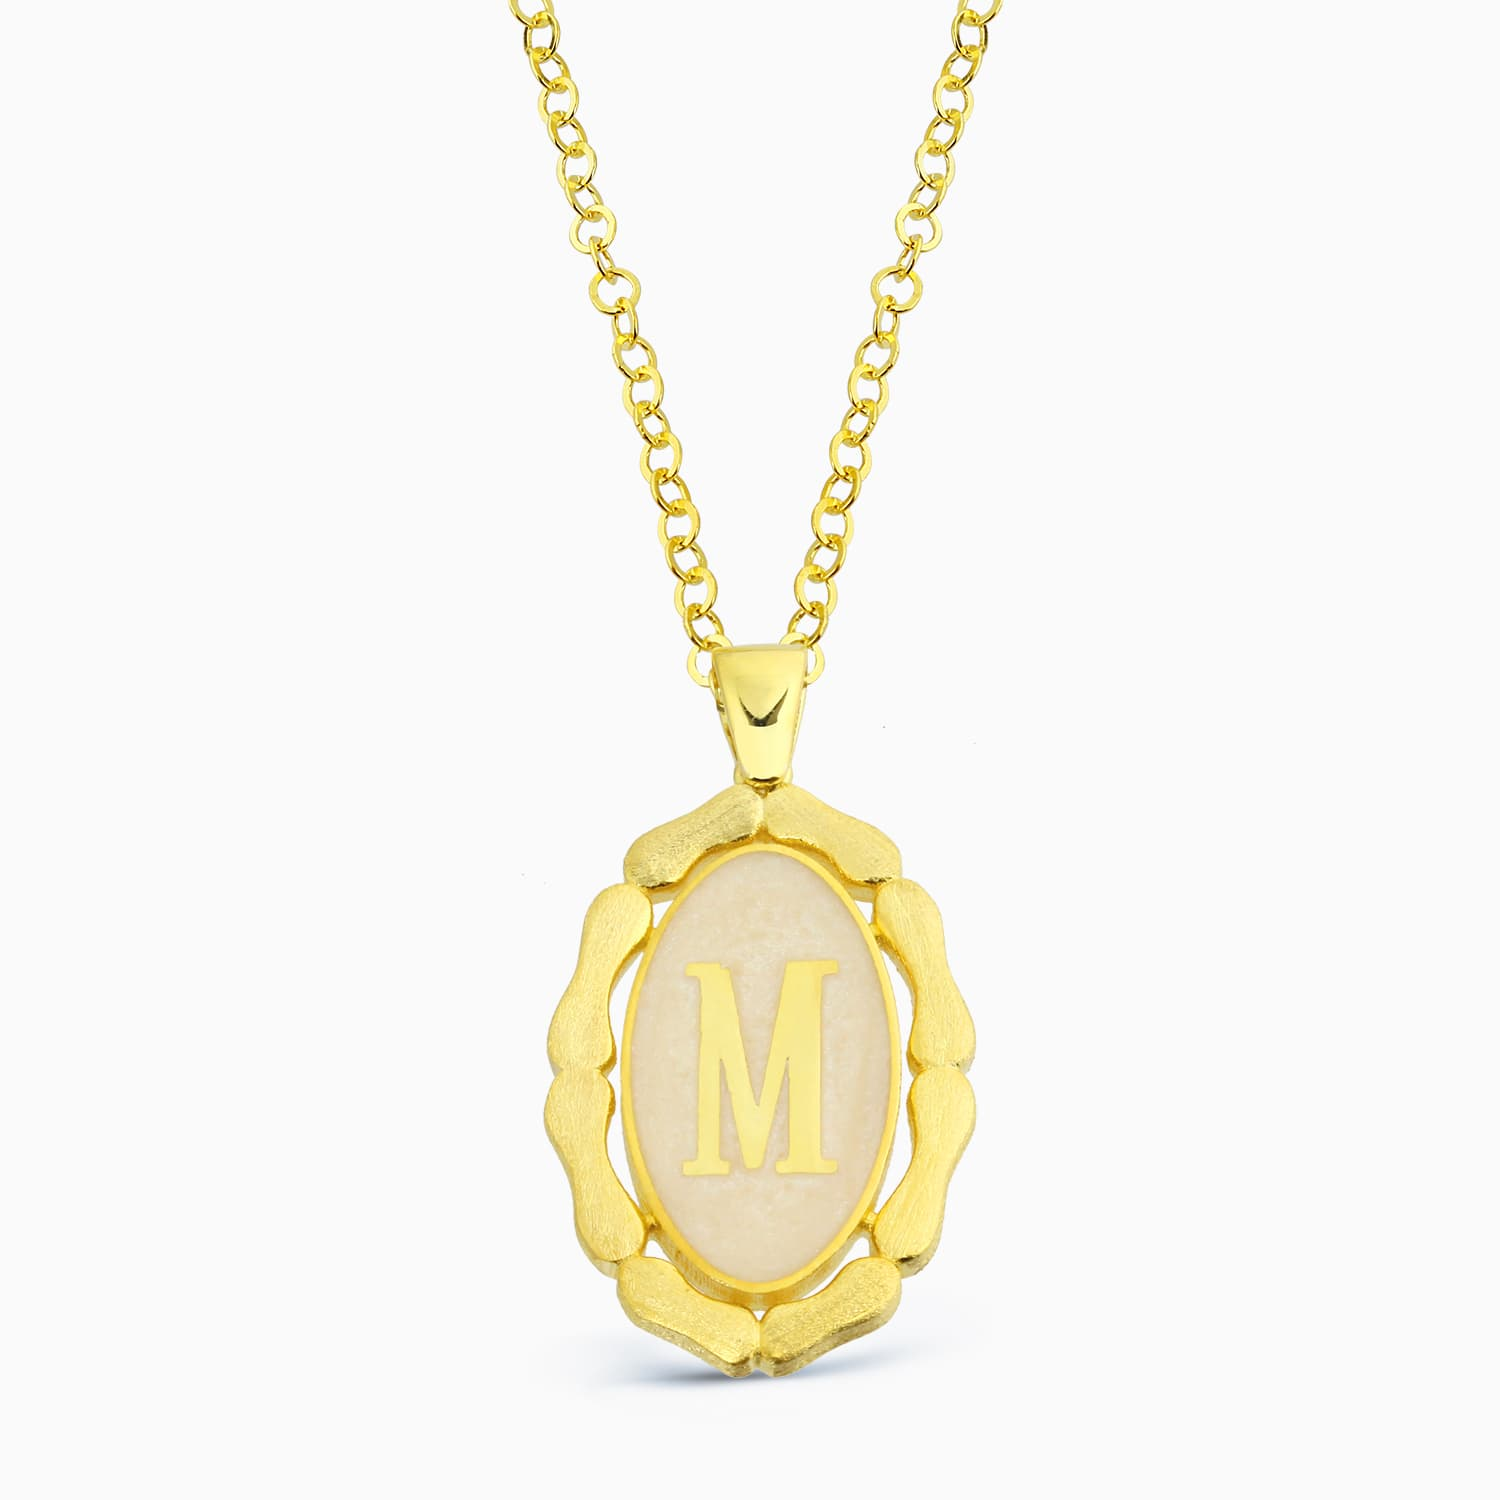 LETTER M MINNED NECKLACE